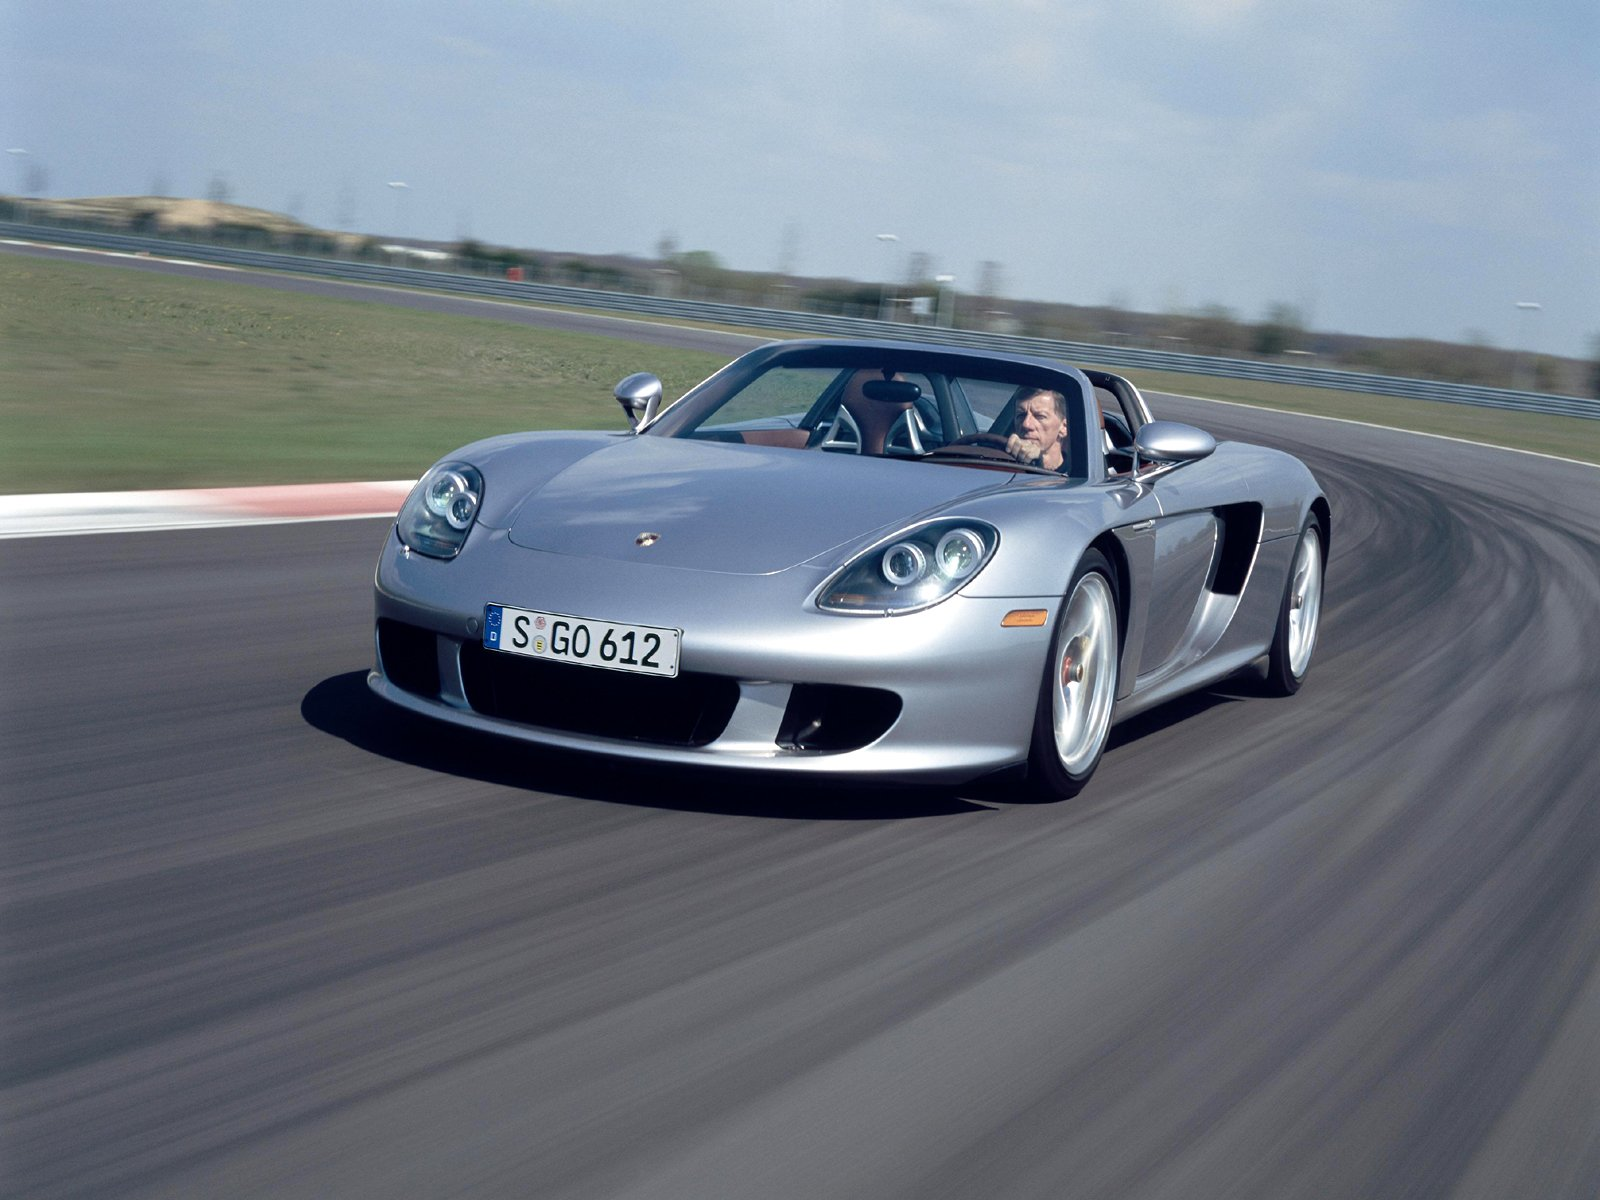 Porsche Carrera GT Specs, Top Speed, Price, Pictures & Engine Review